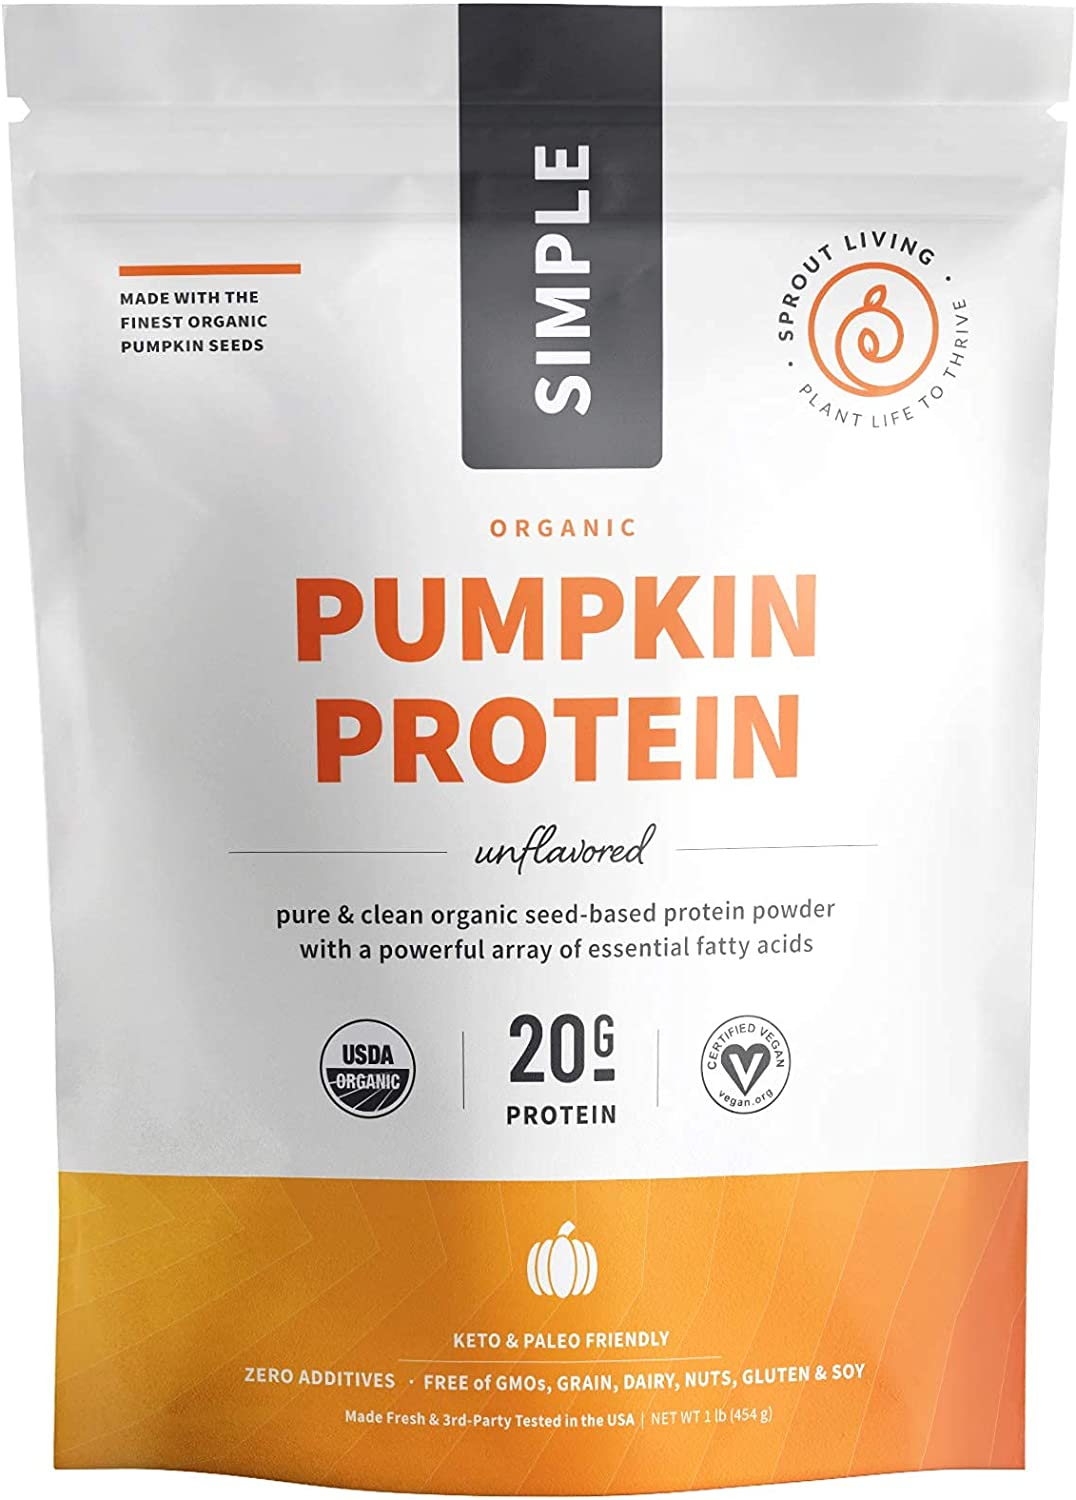 Sprout Living Simple Pumpkin Seed Protein Powder, 20 Grams Organic Plant Based Protein Powder without Artificial Sweeteners, Non Dairy, Non-GMO, Vegan, Gluten Free, Keto Drink Mix (1 Pound)